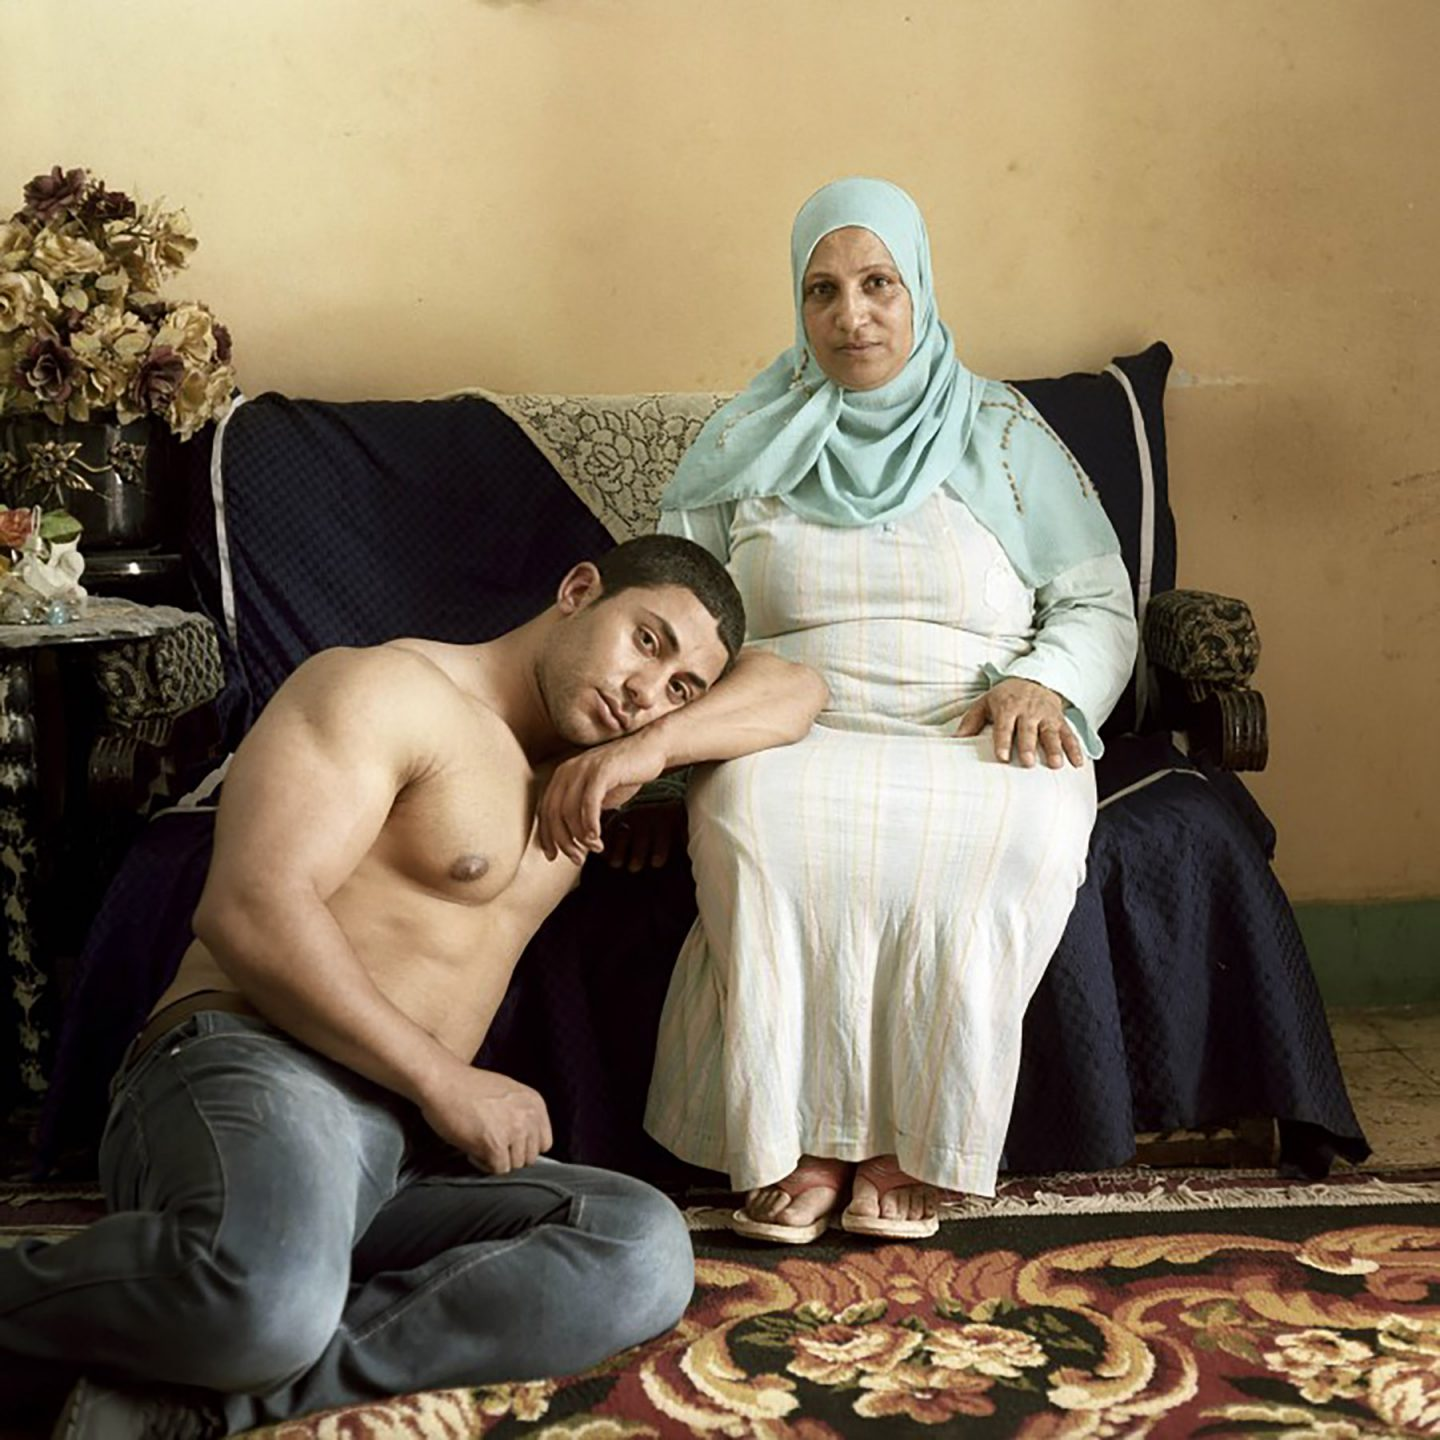 iGNANT-Photography-Denis-Dailleux-Egypt-Mother-And-Son-14